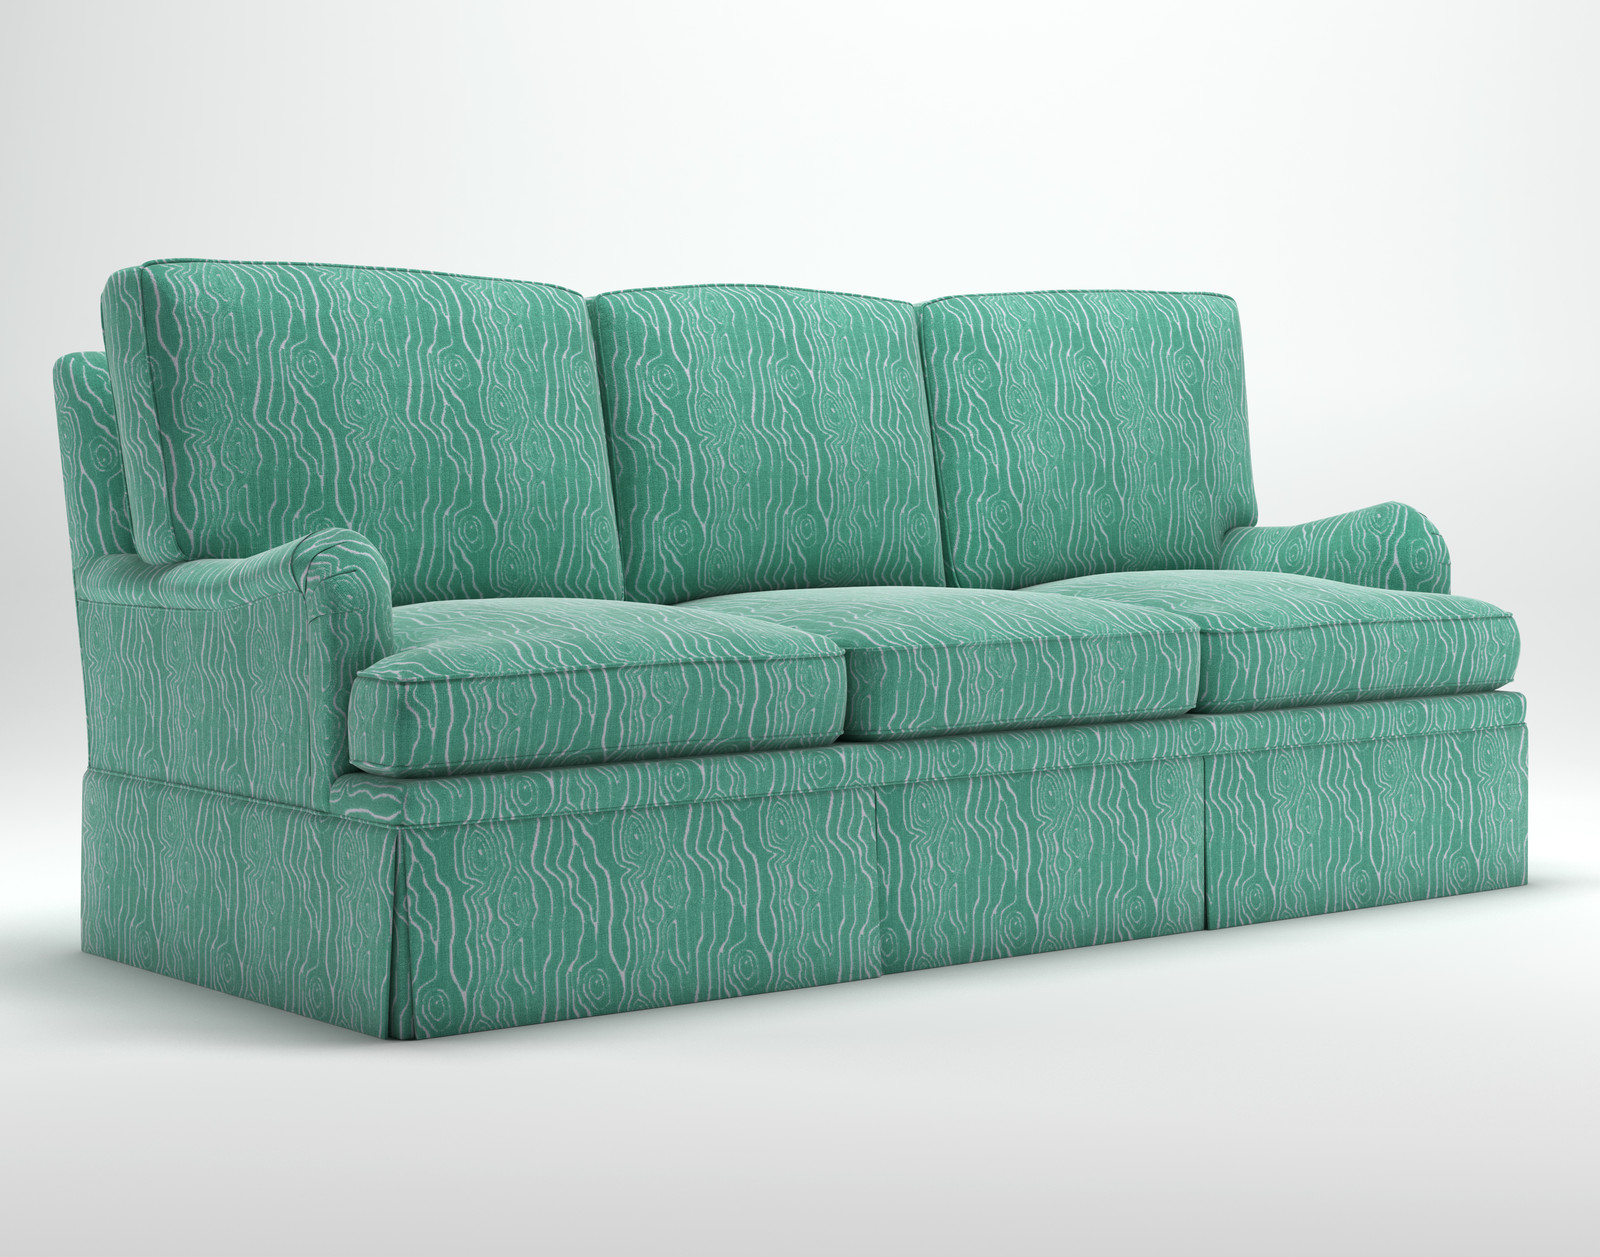 Duralee: London Sofa